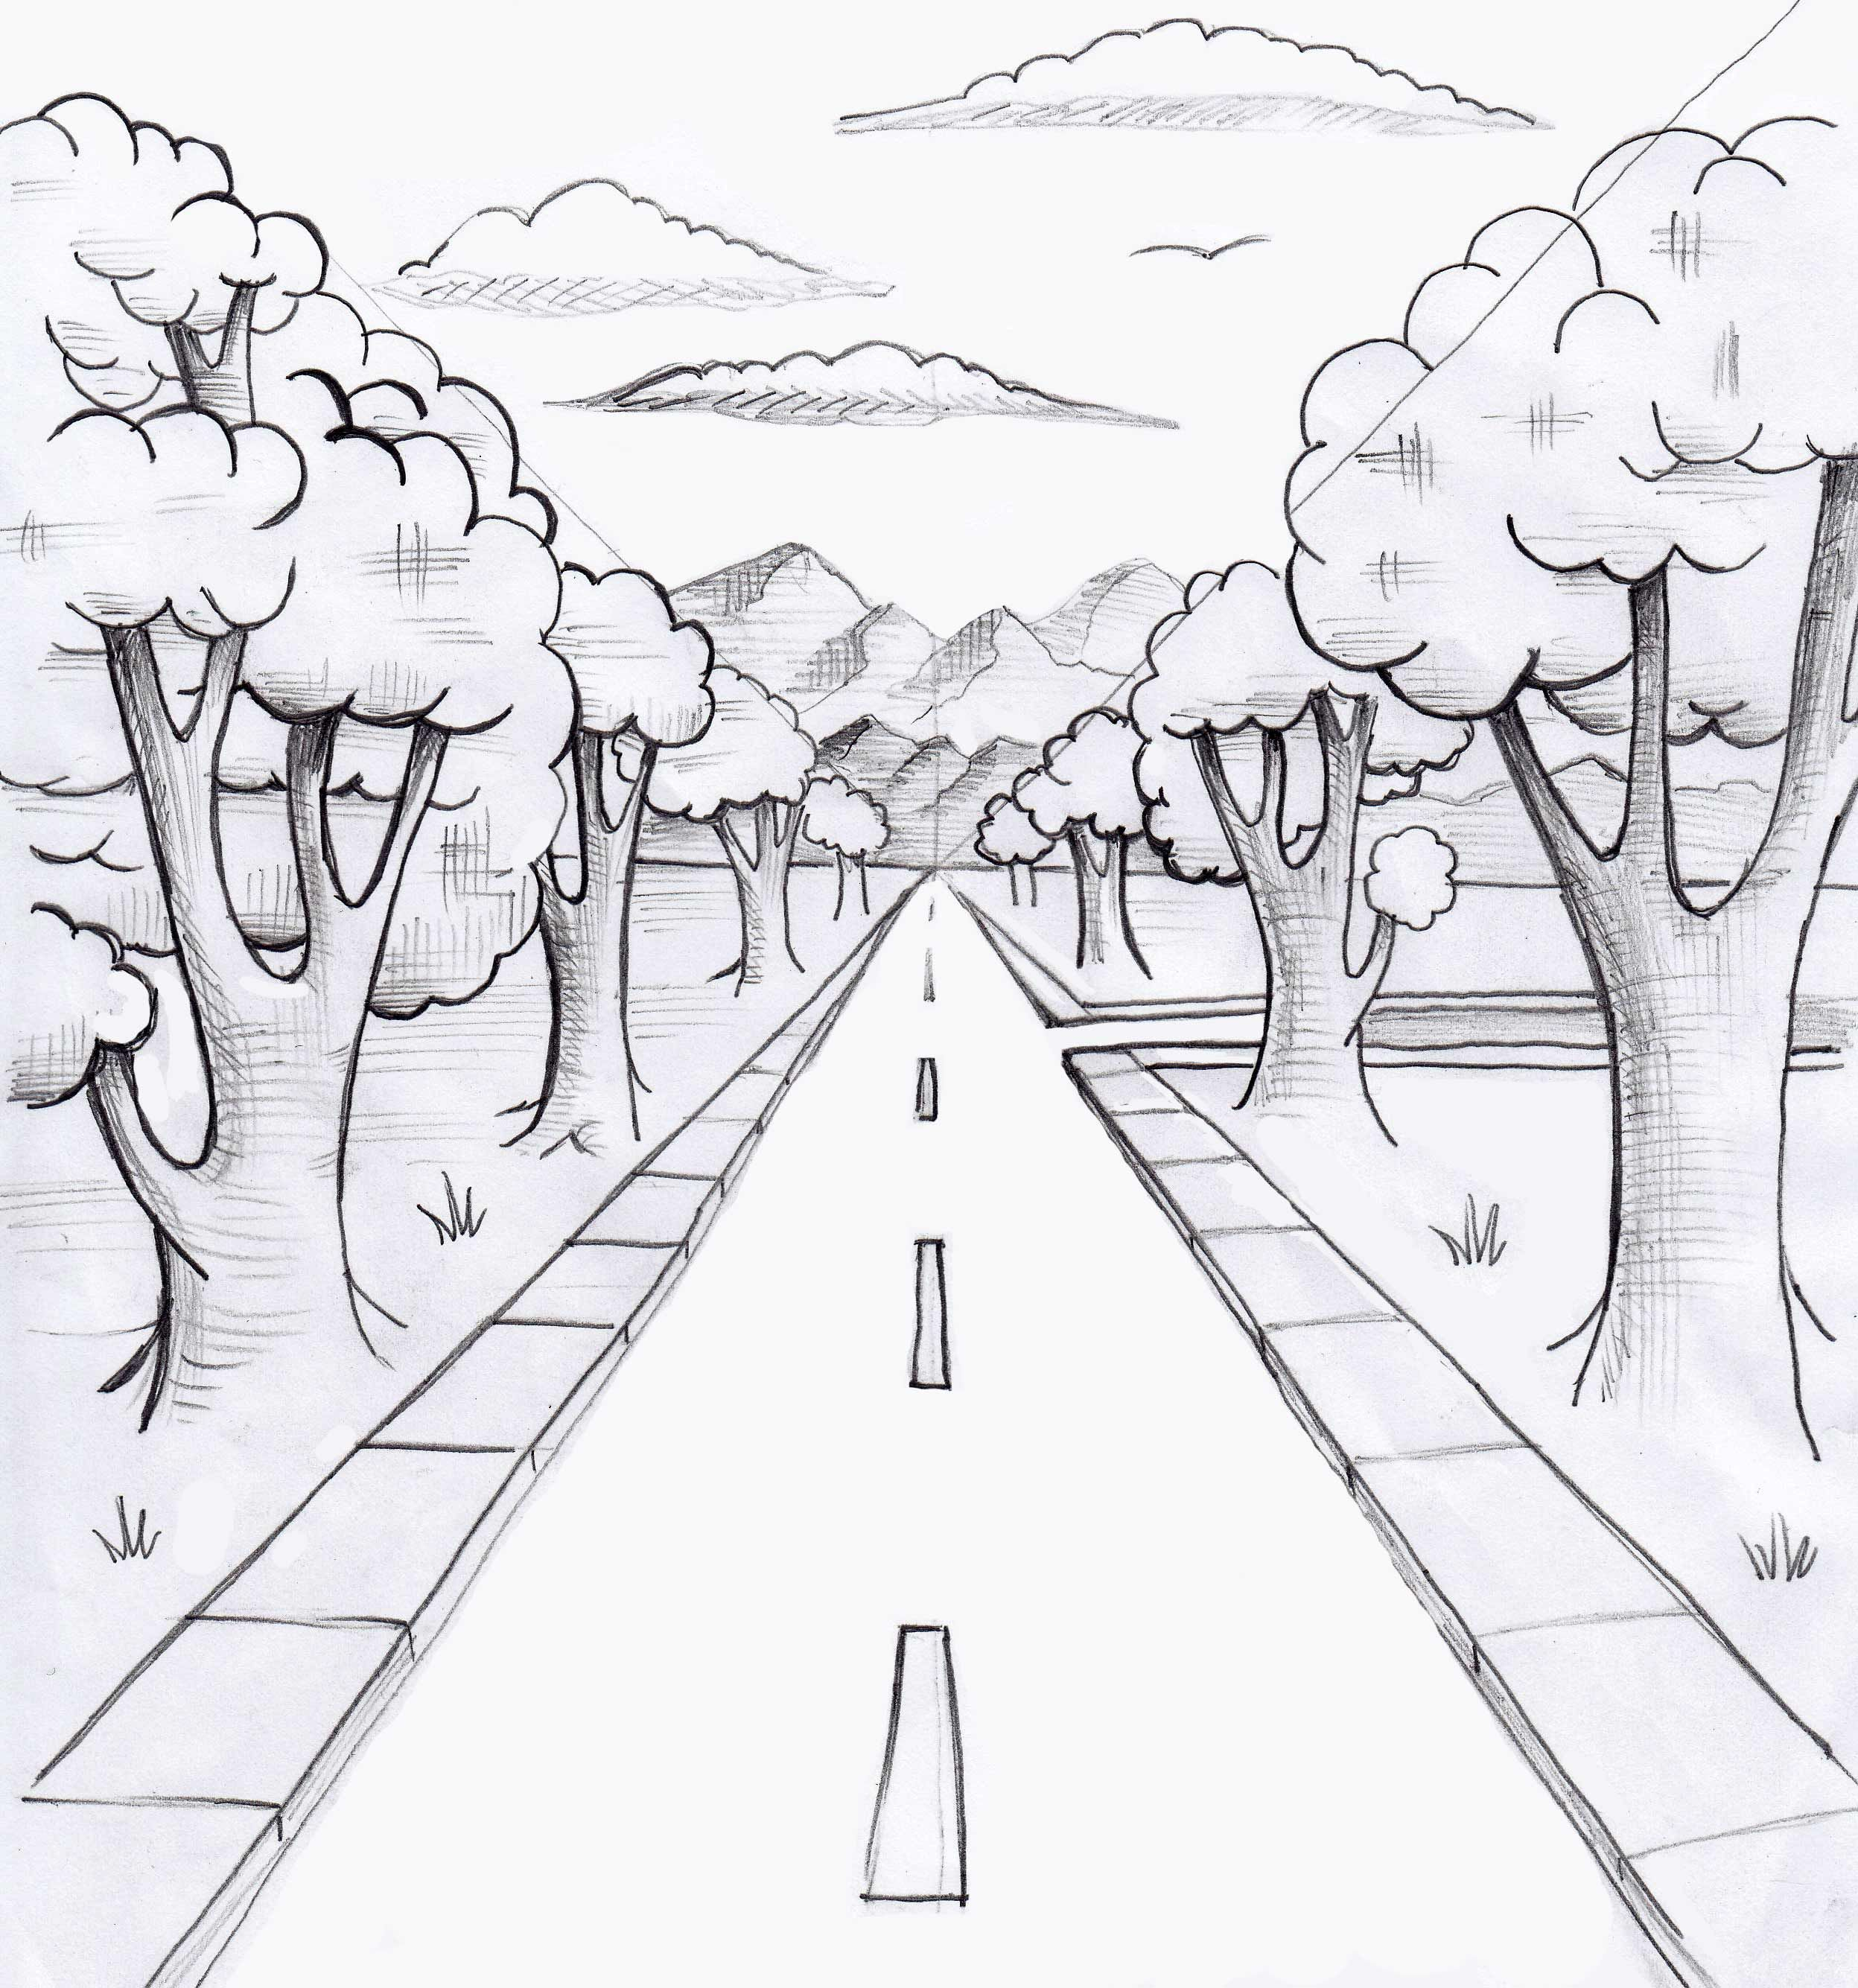 Perspective 101 #artanddrawing